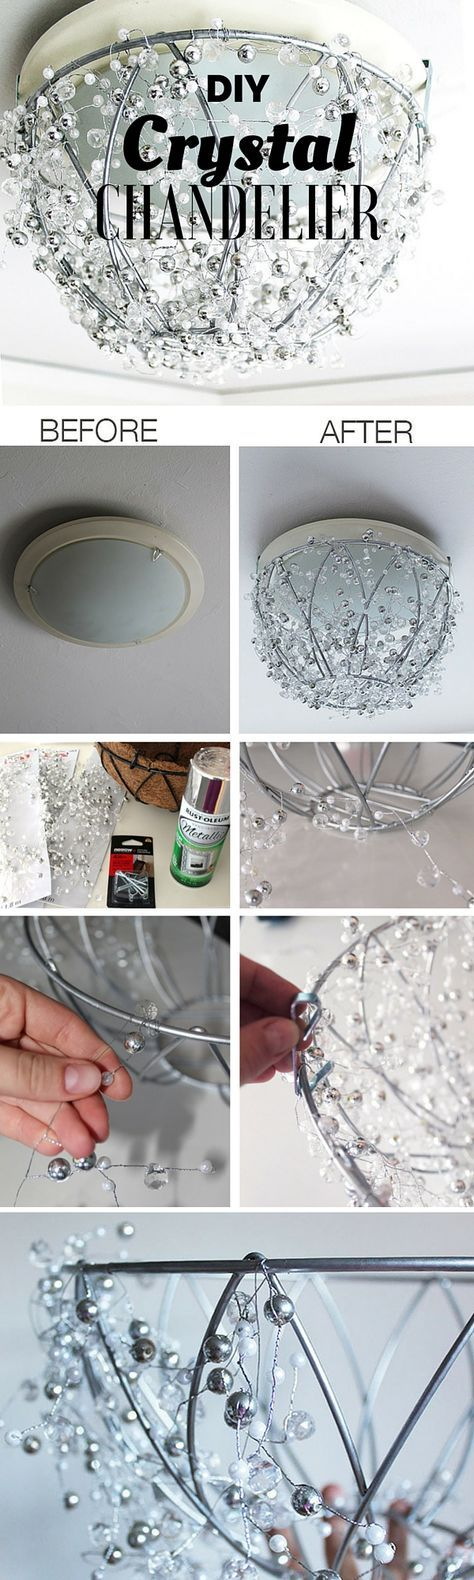 Check out the tutorial: #DIY Crystal Chandelier /istandarddesign/